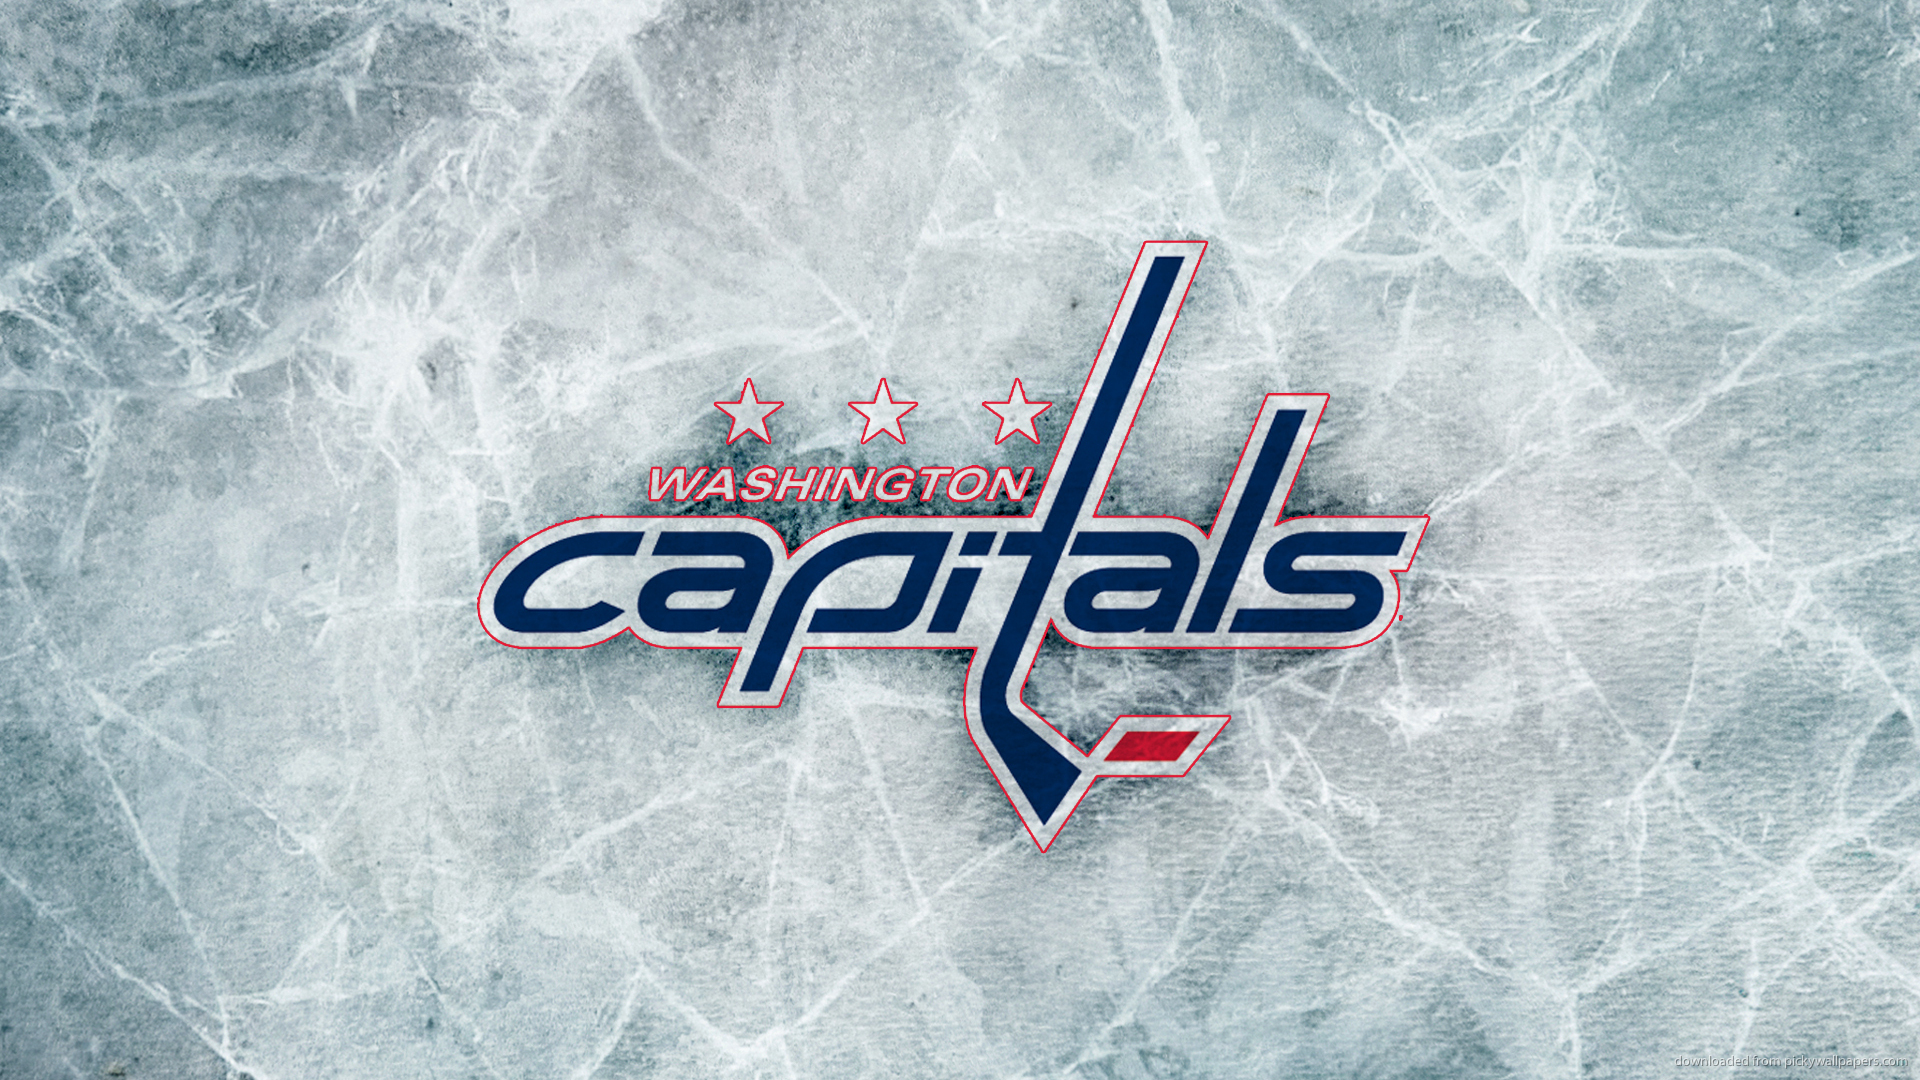 hd washington capitals wallpaper wallpapersafari